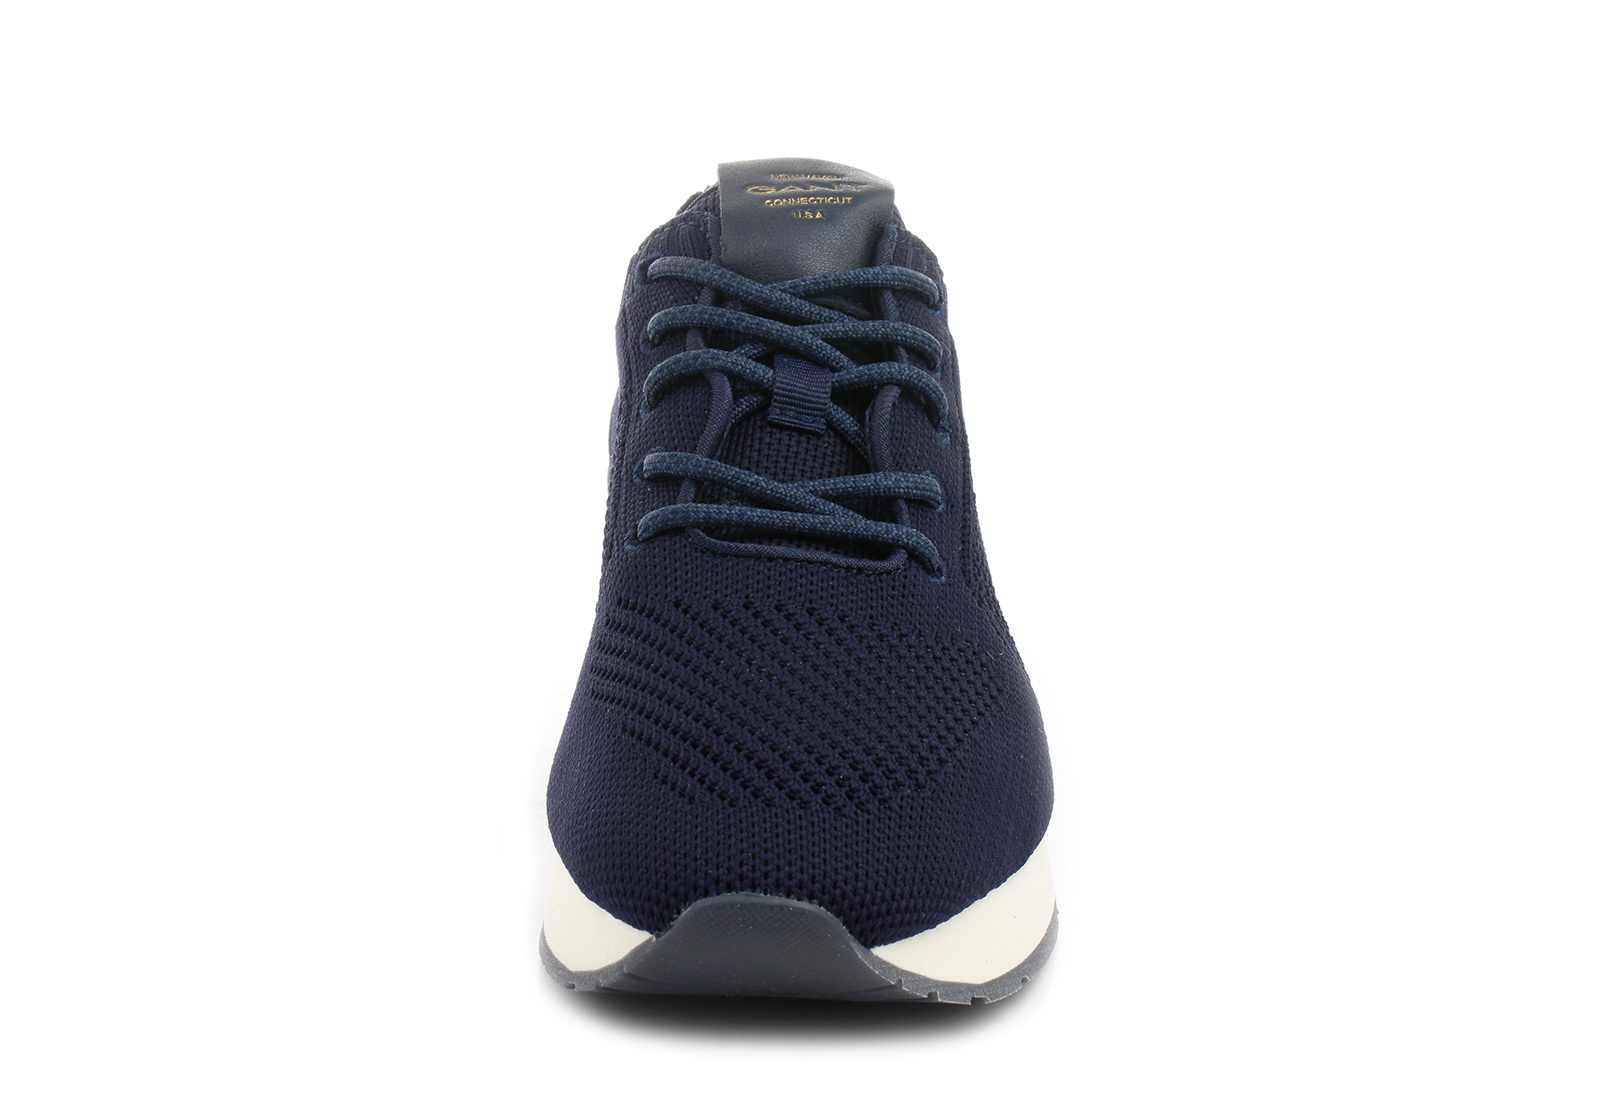 91f409cfb8 Gant Shoes - Linda - 18538352-G69 - Online shop for sneakers, shoes ...